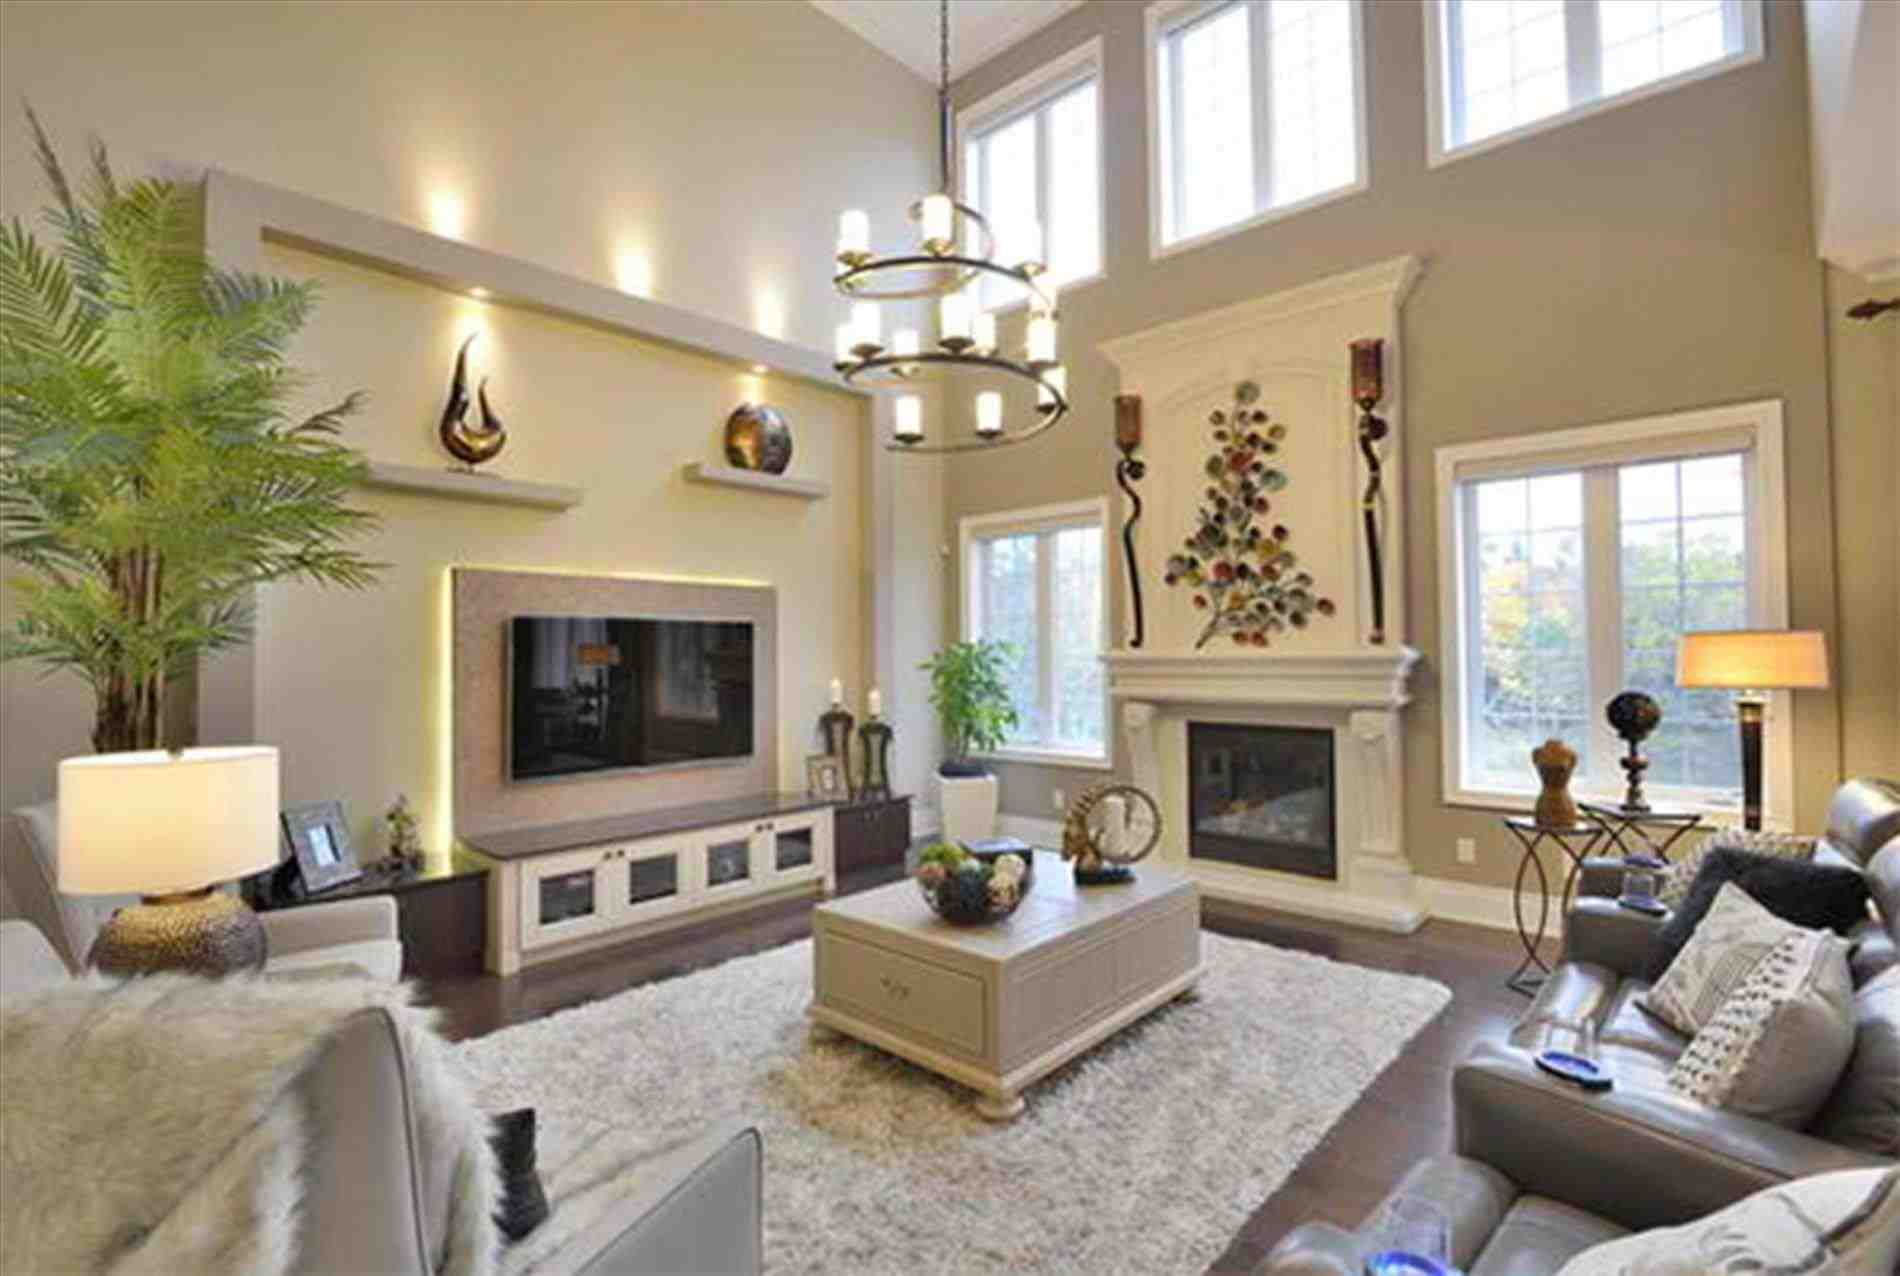 Remarkable Wall Decor For High Ceilings Of Ating Living Room Living Room Walls Acnn Decor